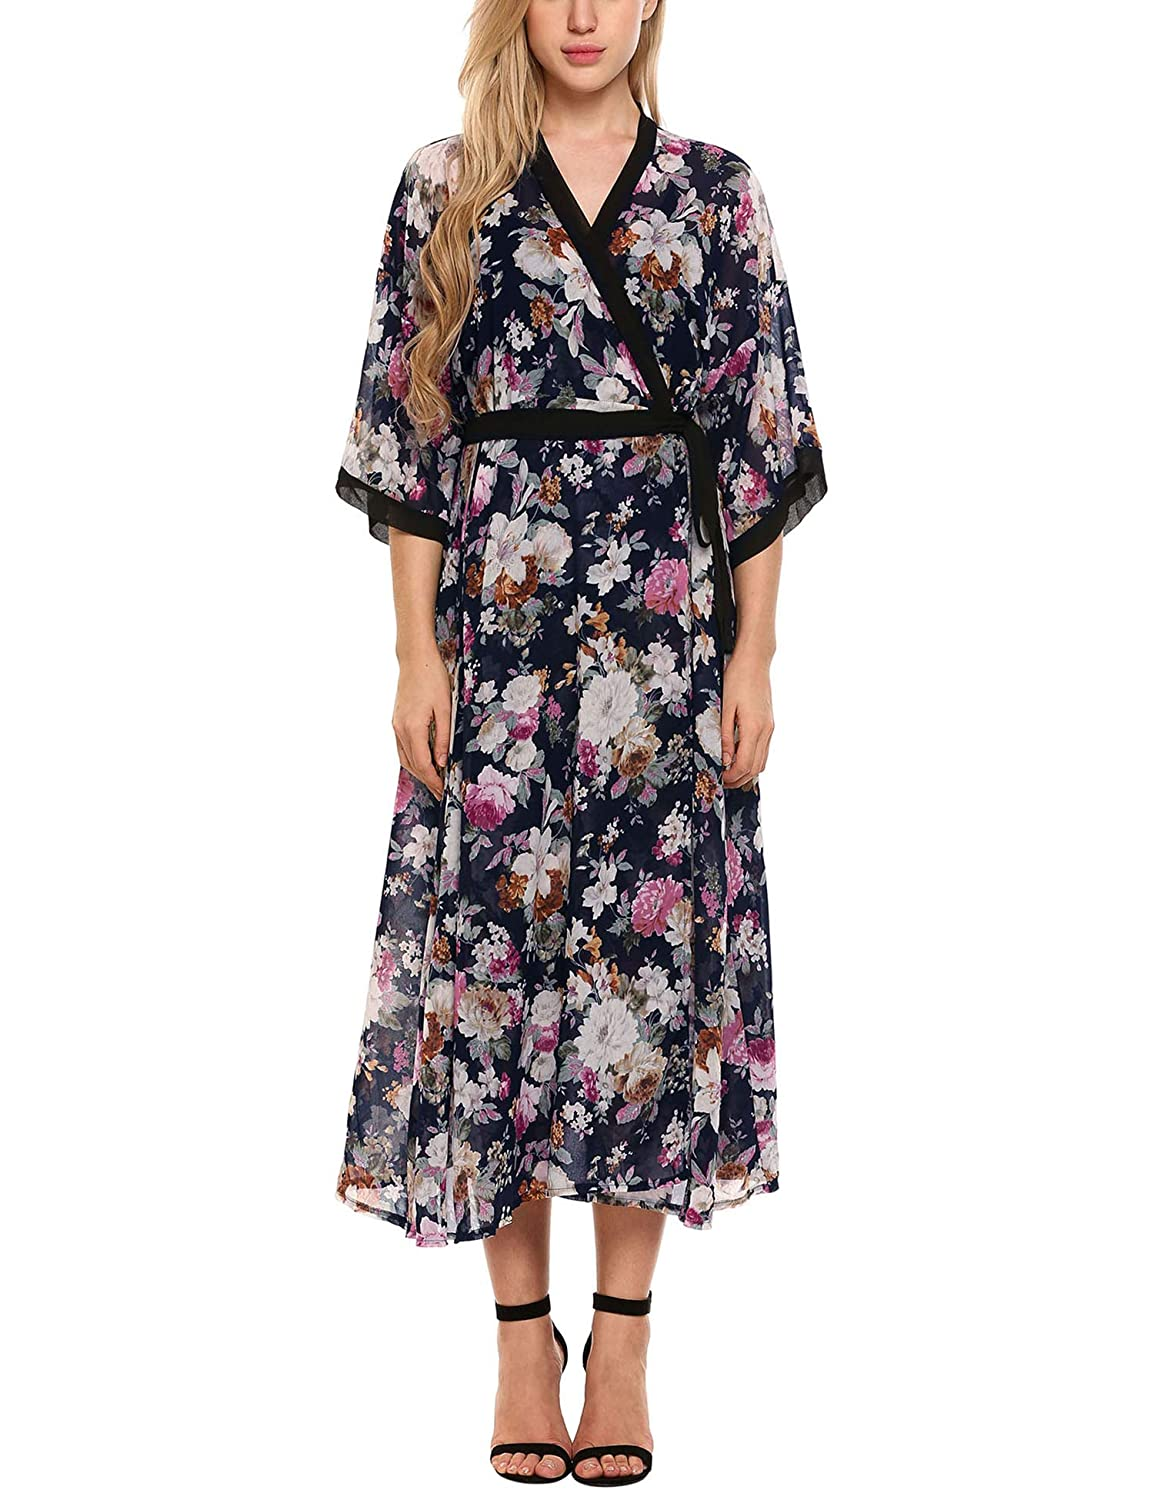 32fe7d21aa4 Zeagoo Women s Floral Flowy Kimono Open Front Beach Cover Ups at Amazon  Women s Clothing store